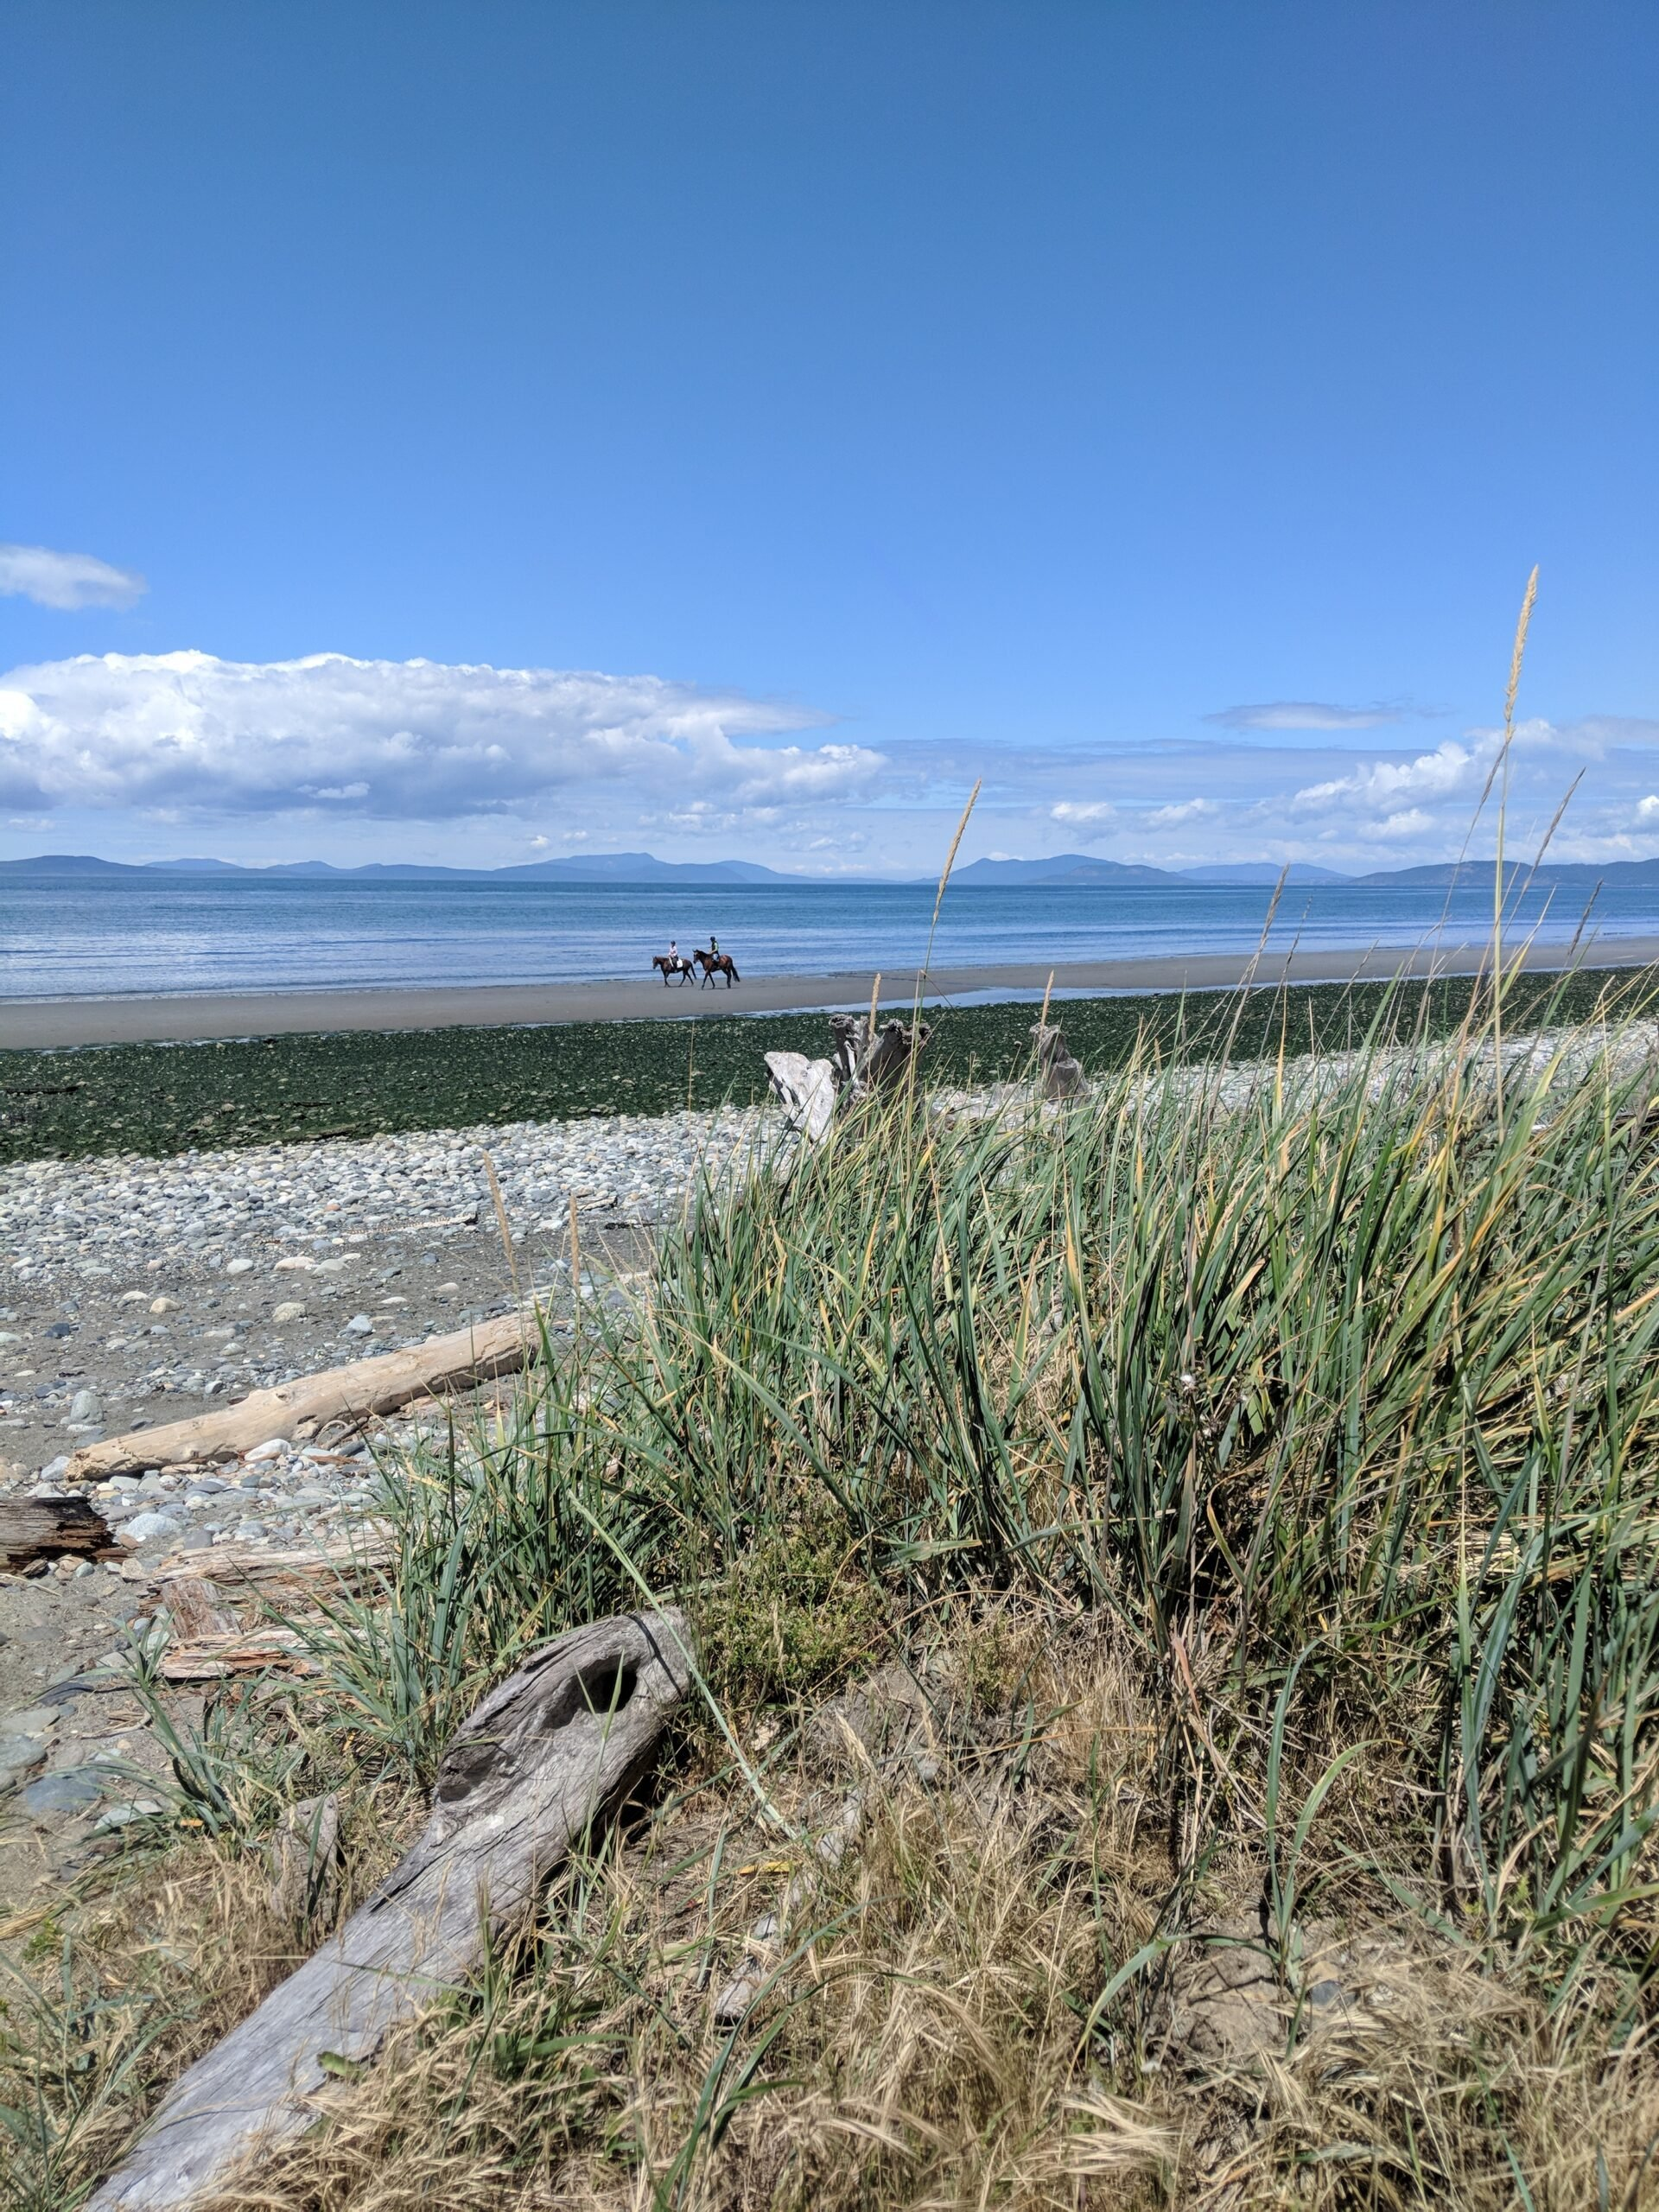 View from the beach at ft casey state park on whidbey island